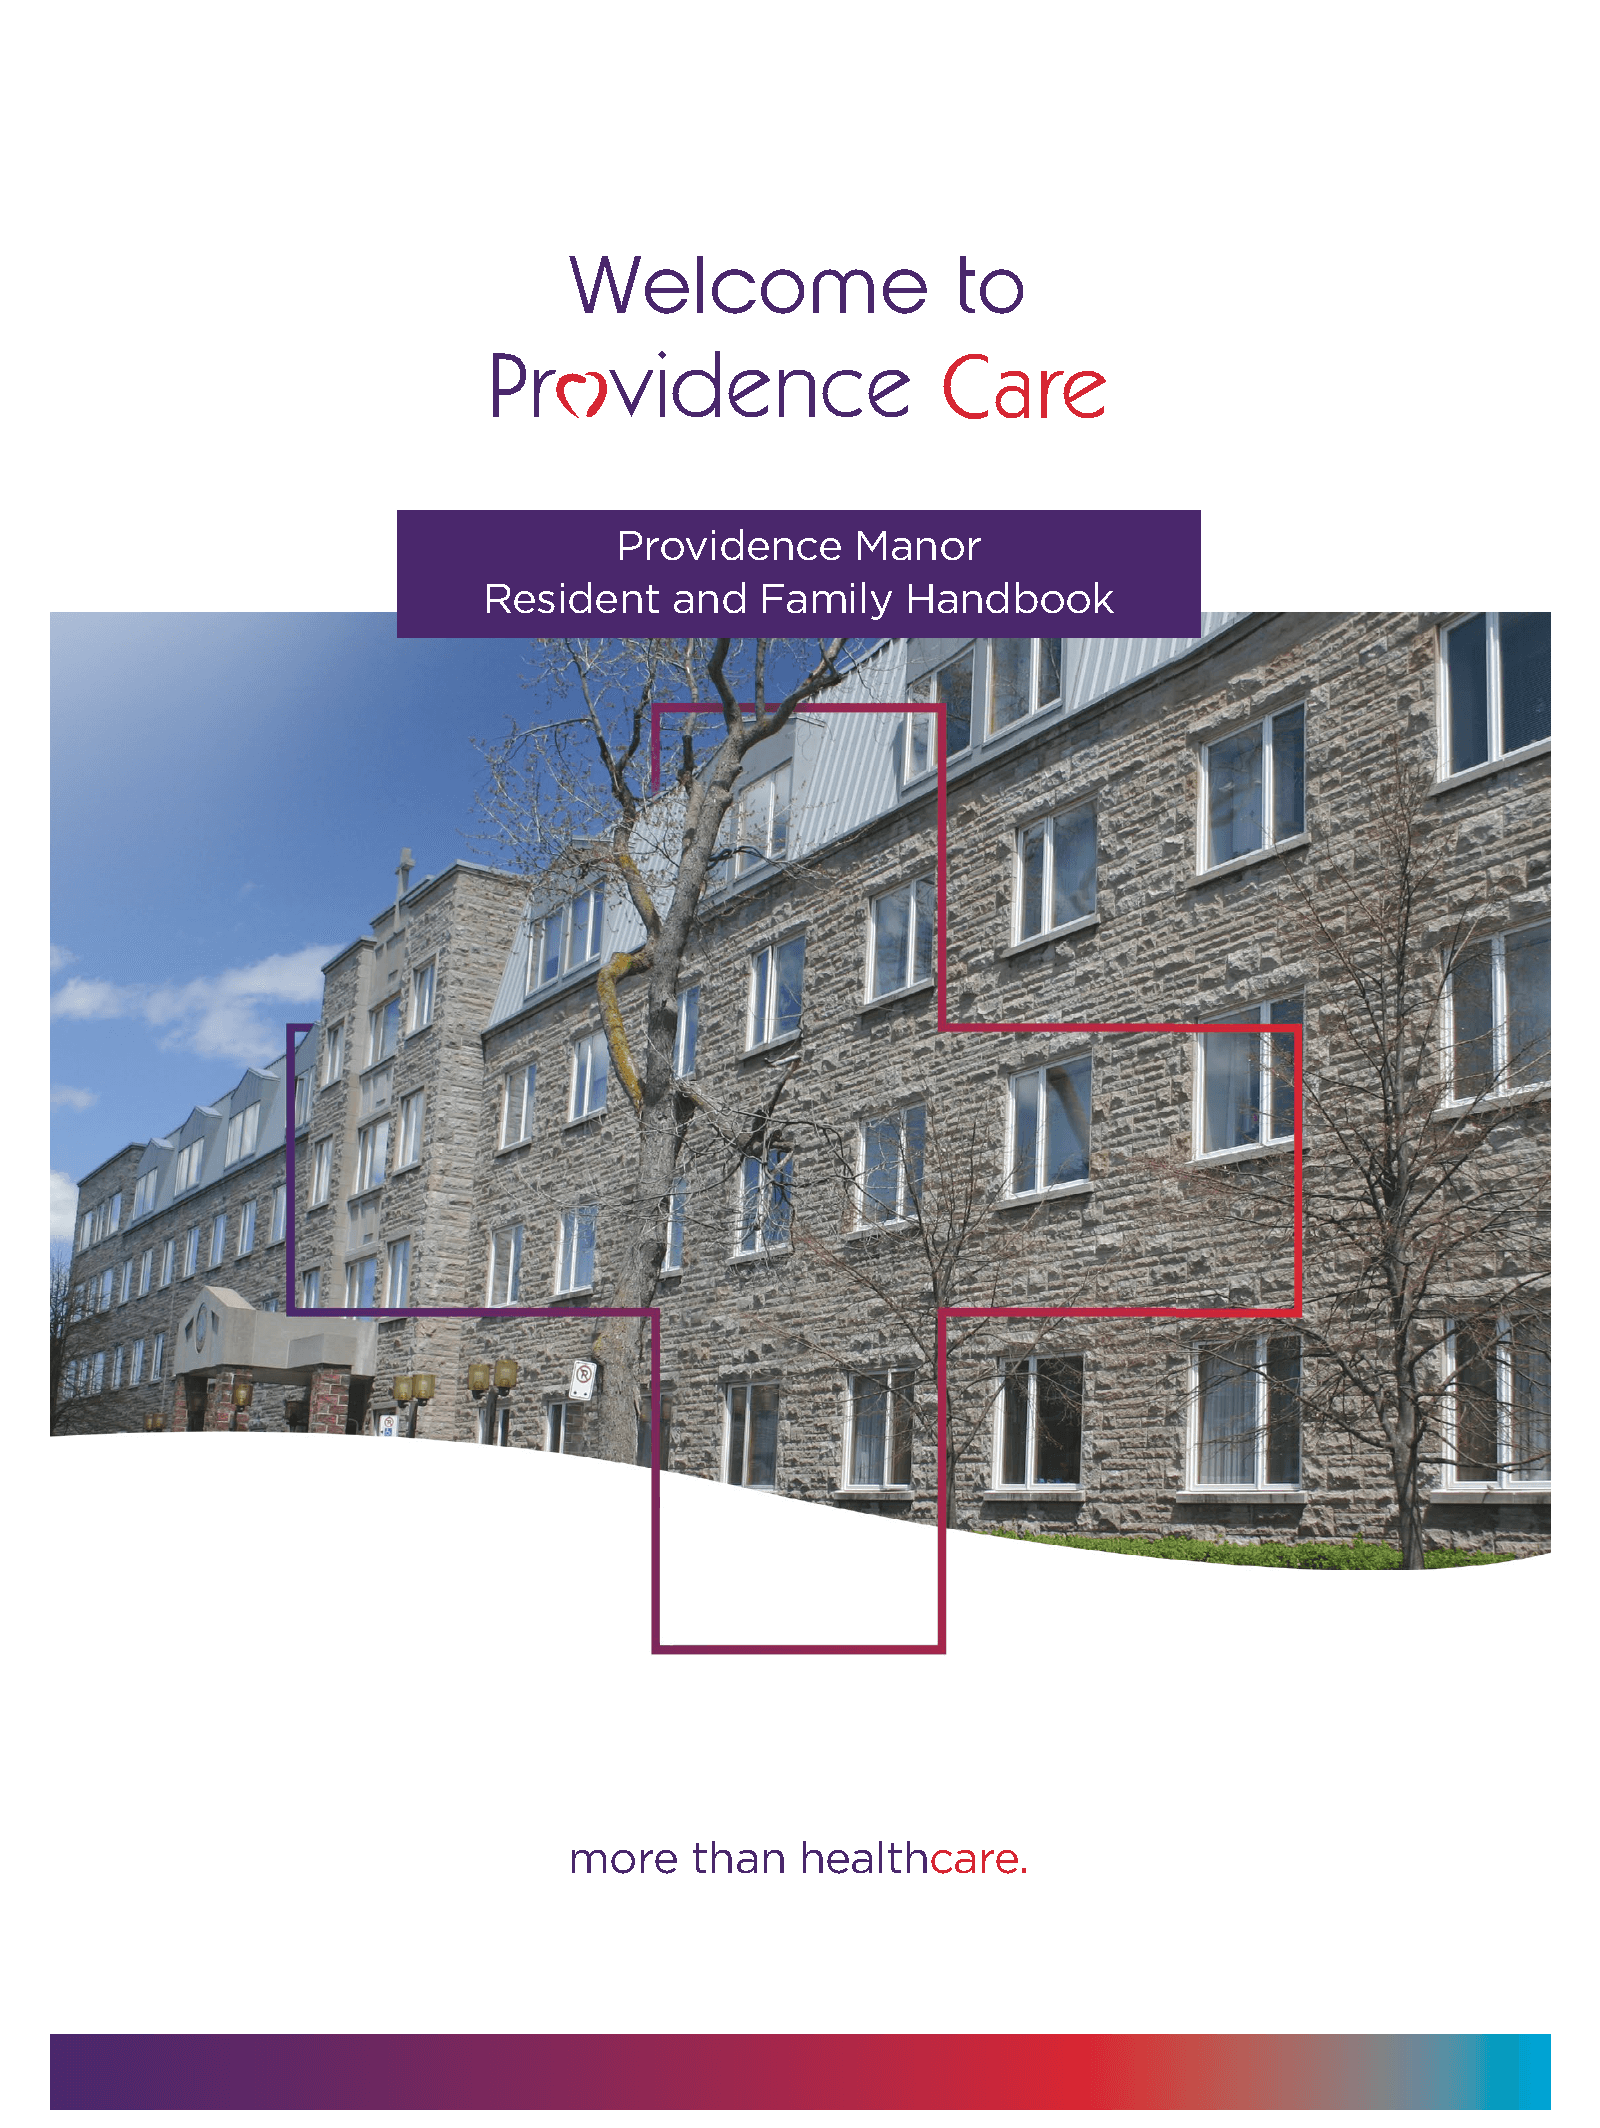 e1d38ffde58d5 ... answer your questions regarding care and services at Providence Manor  and provides information to help ease the transition to a long-term care  home.